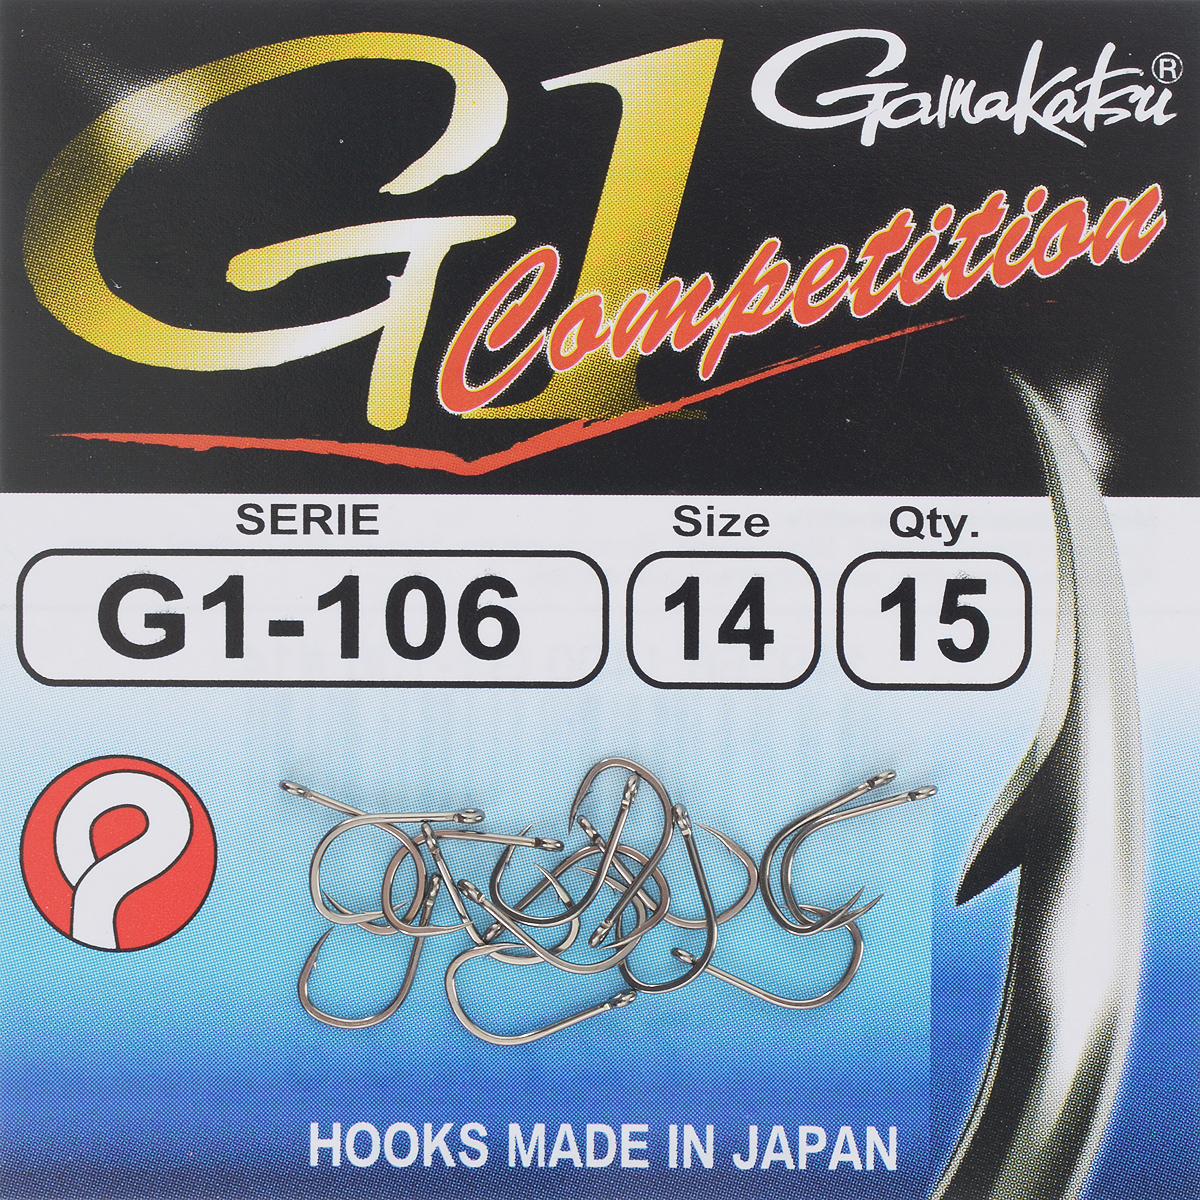 Набор крючков Gamakatsu G-1 Competition, размер №14, 15 шт gamakatsu g method pole competition